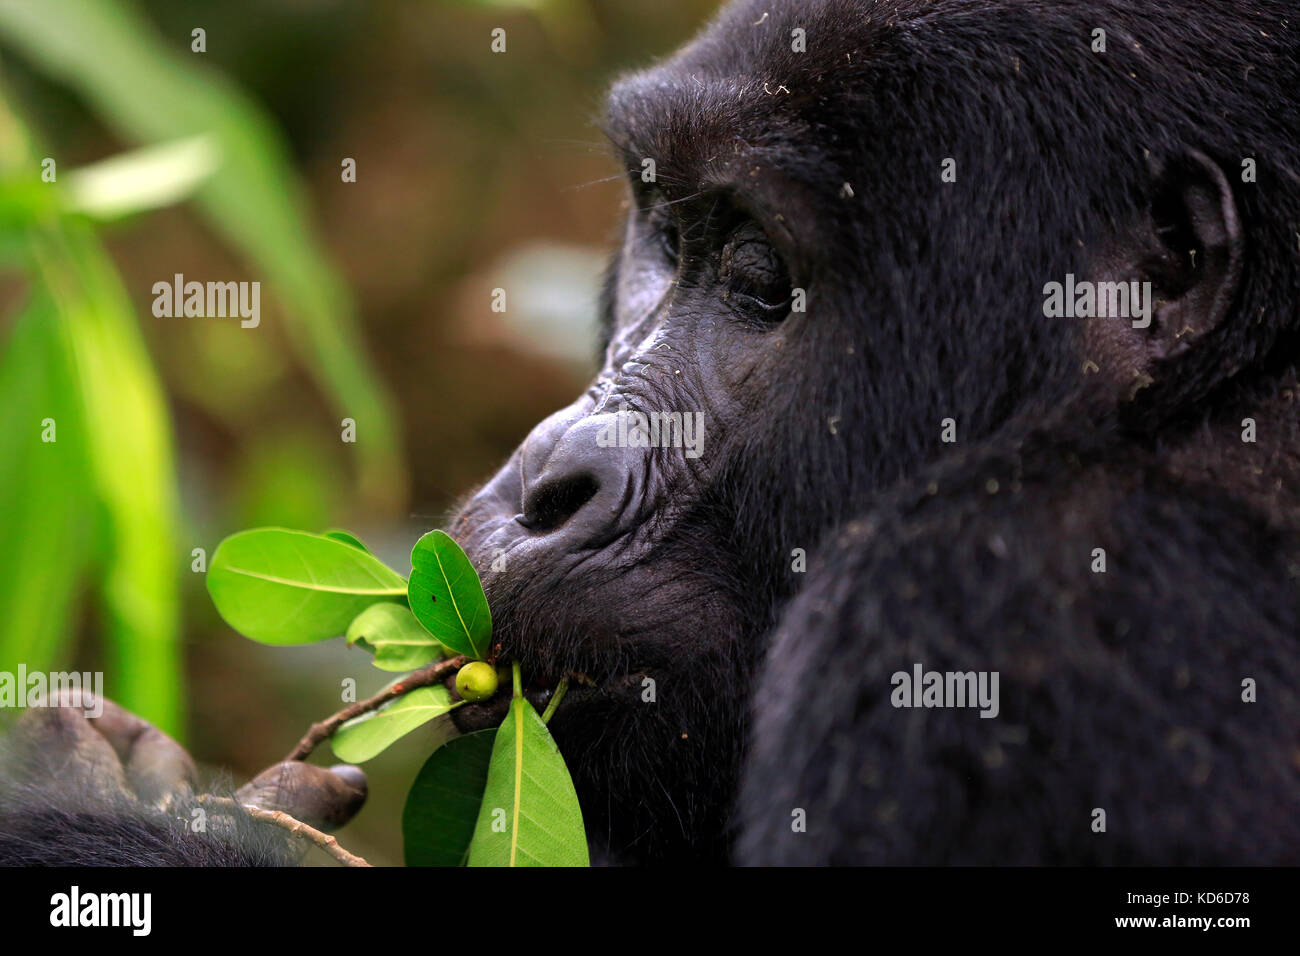 Close-up of a Mountain Gorilla (Gorilla beringei beringei) Feeding. Bwindi Impenetrable National Park, Uganda - Stock Image